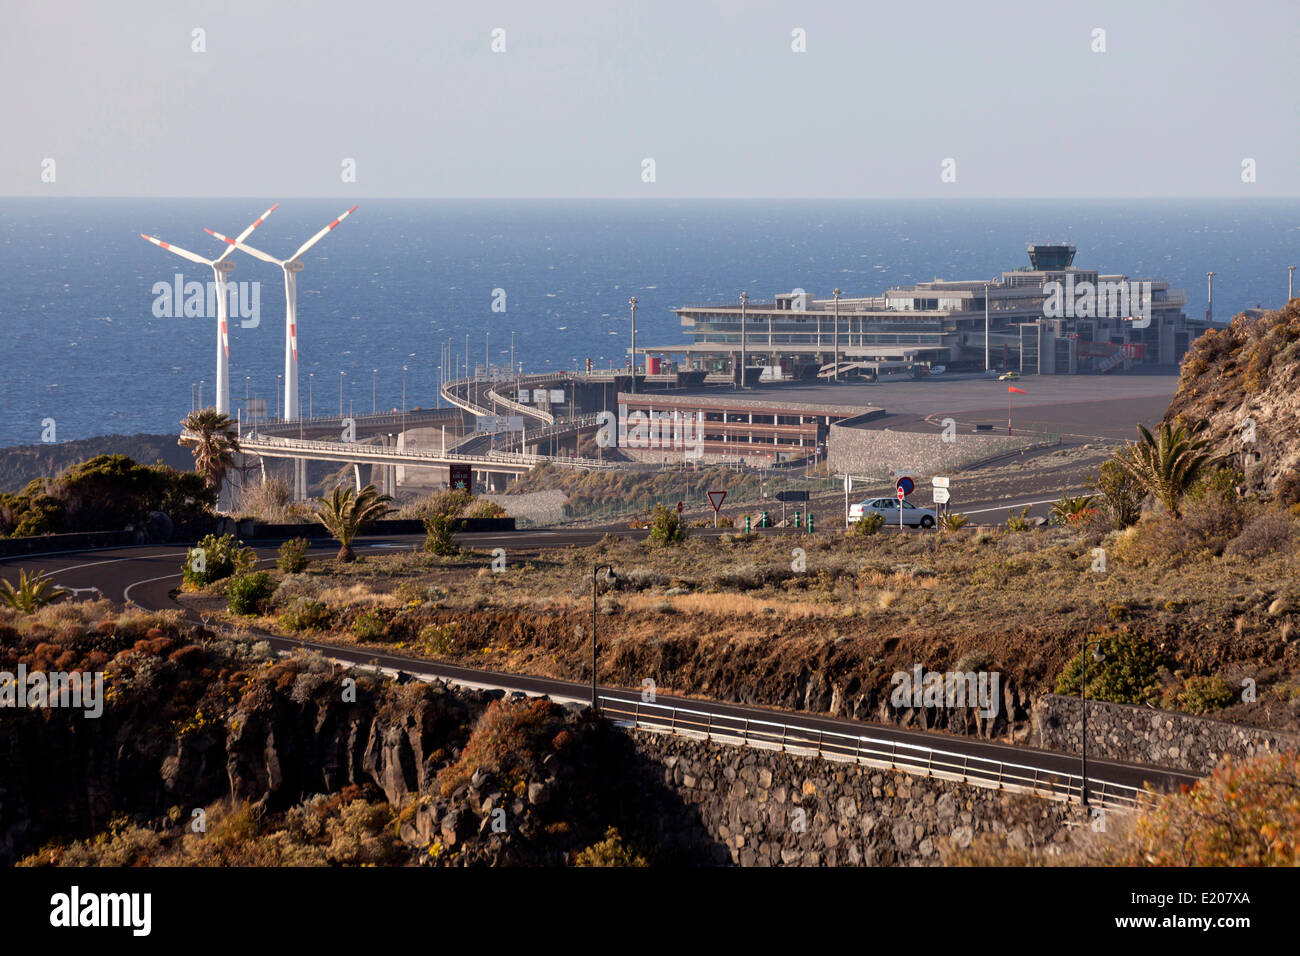 La Palma Canary Islands Airport